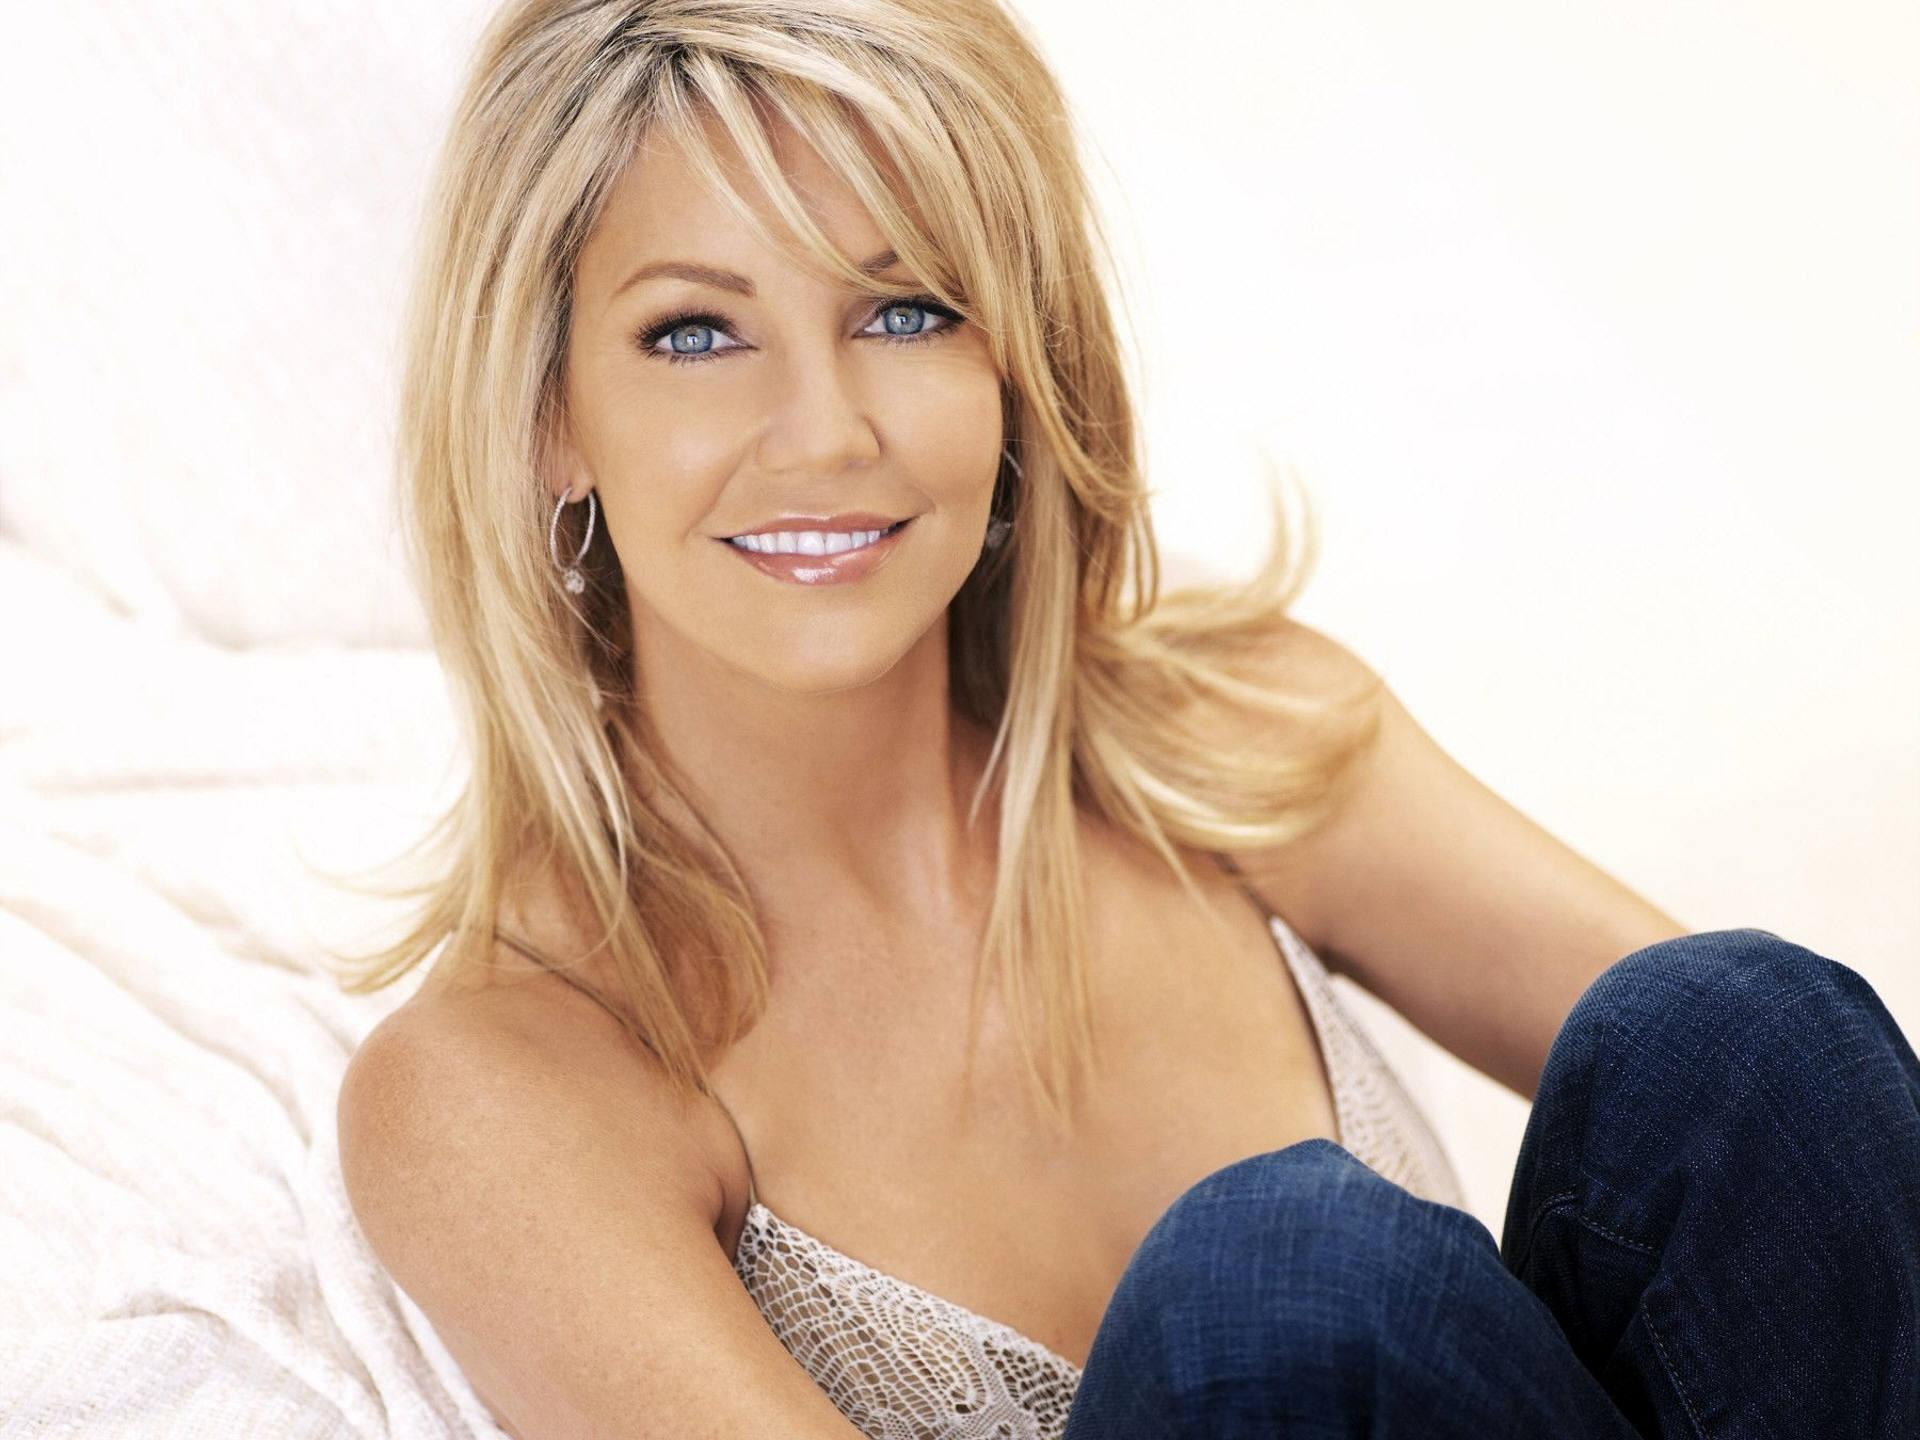 1920x1440 - Heather Locklear Wallpapers 2